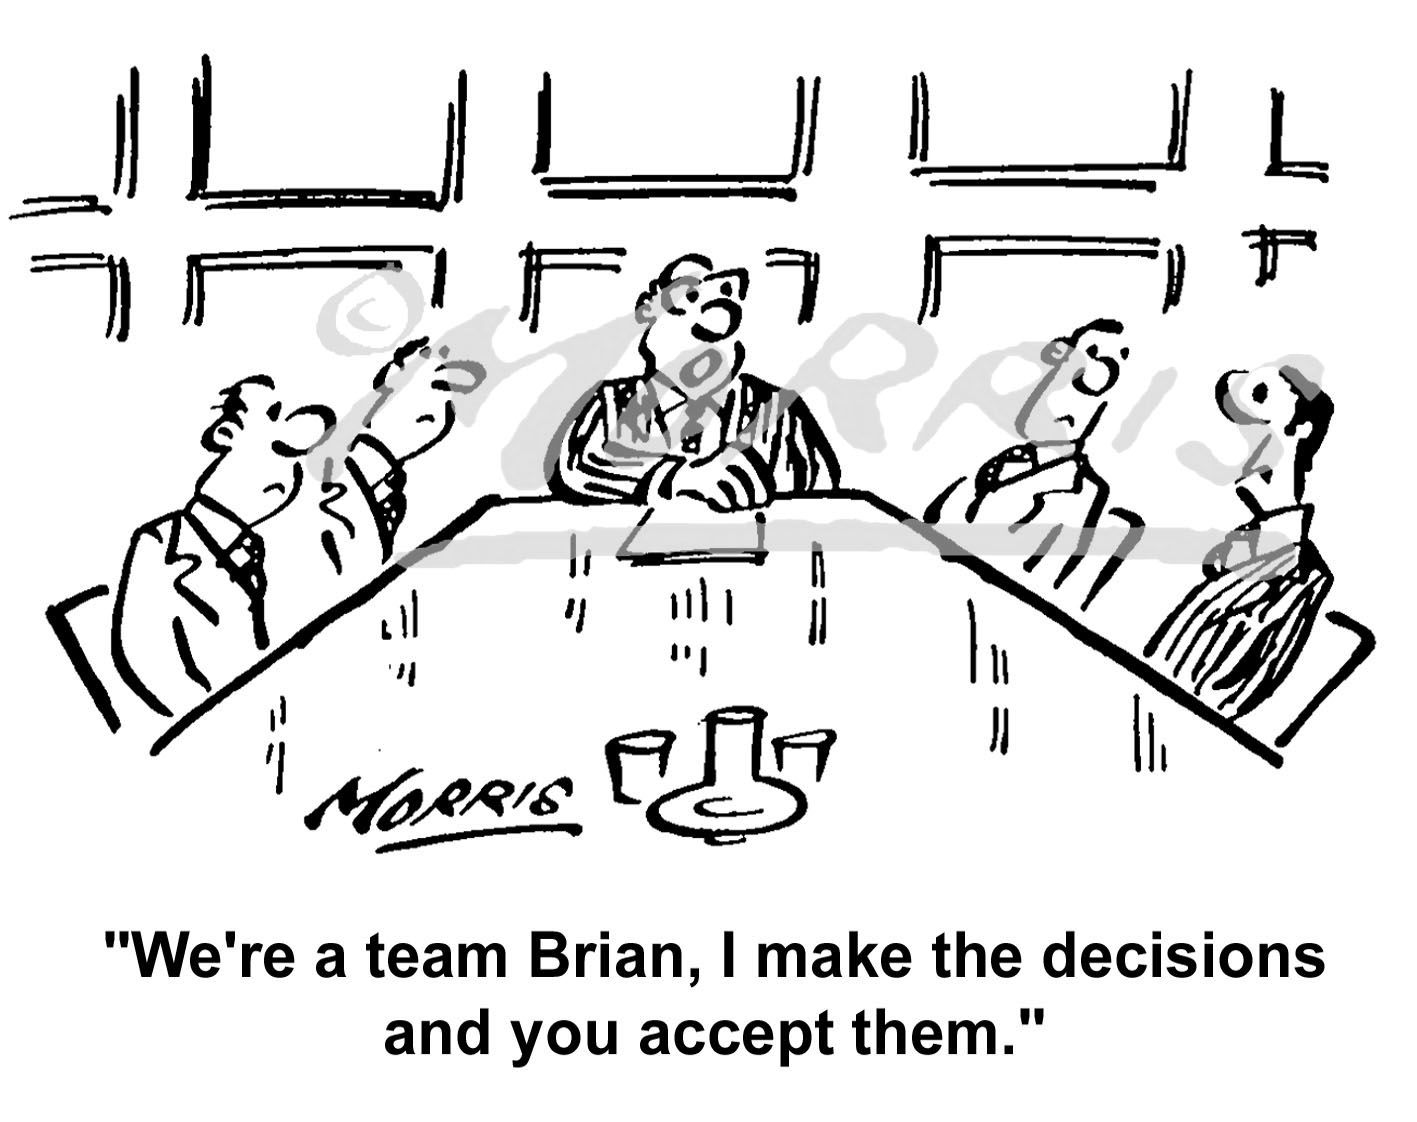 Boardroom cartoon Ref: 1768bw